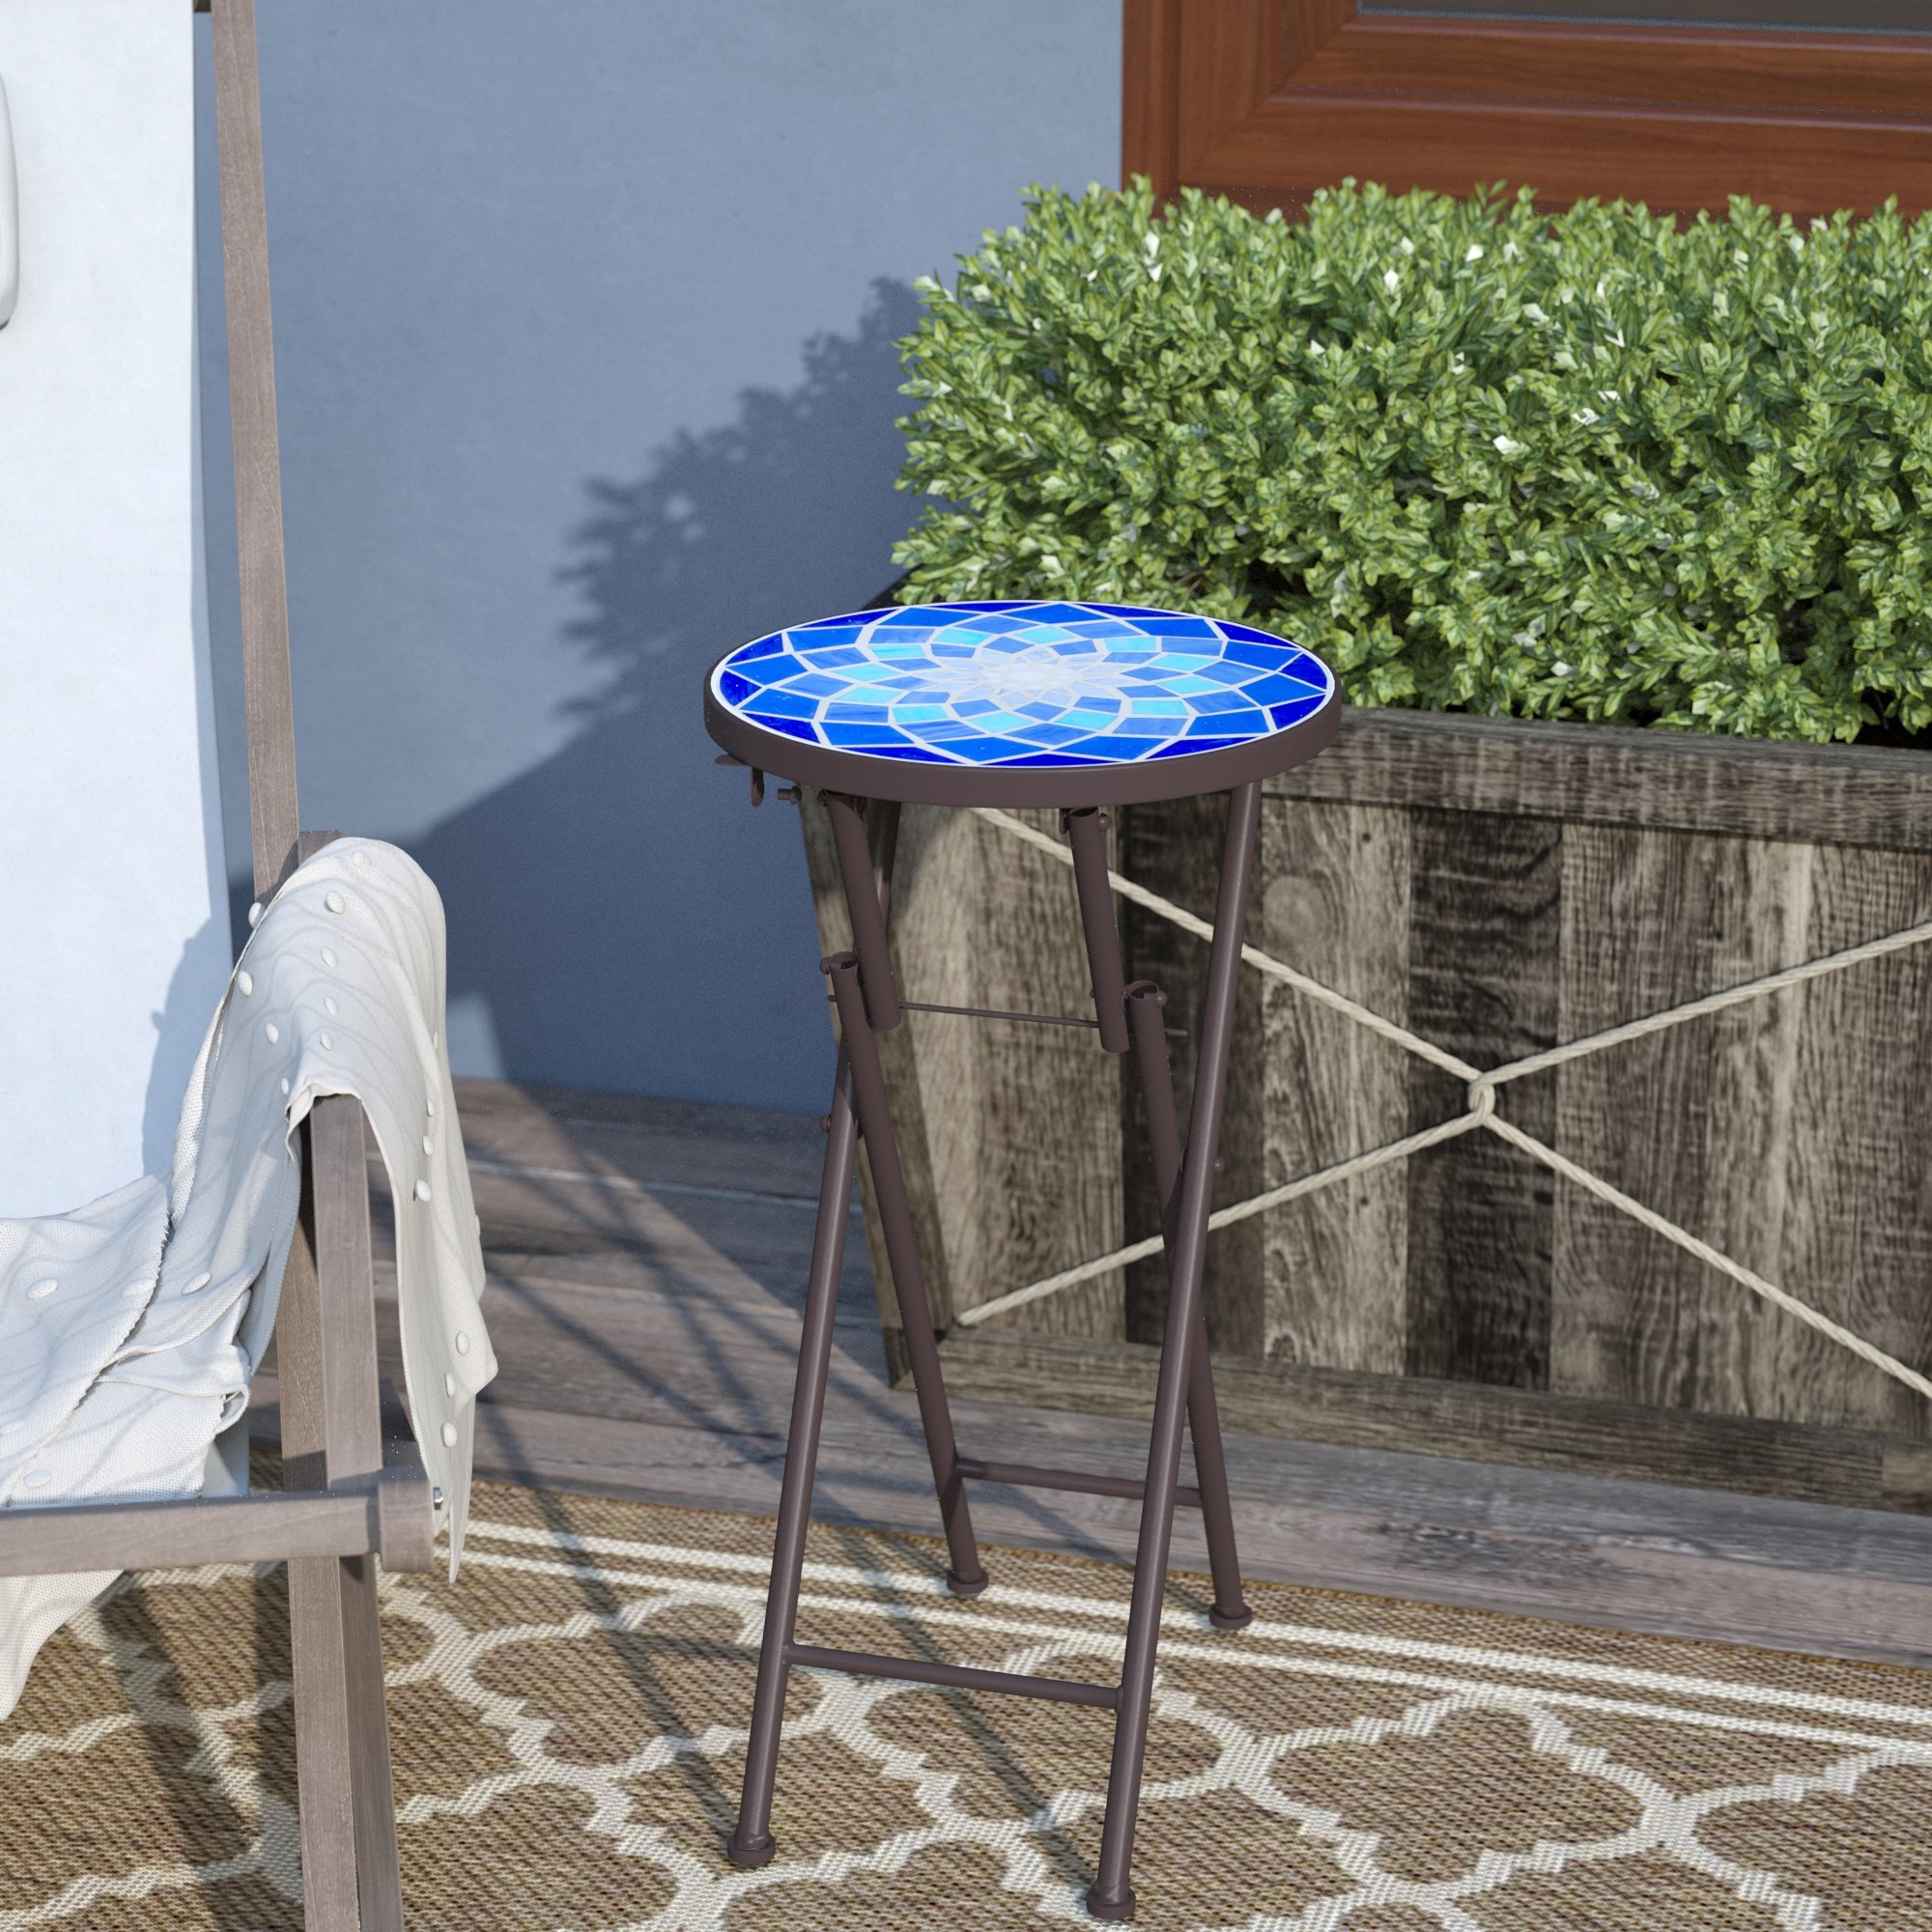 charlton home ruhlman outdoor side table reviews metal screw desk legs industrial bedside small round outside with wheels hampton bay folding patio brass end glass top runner